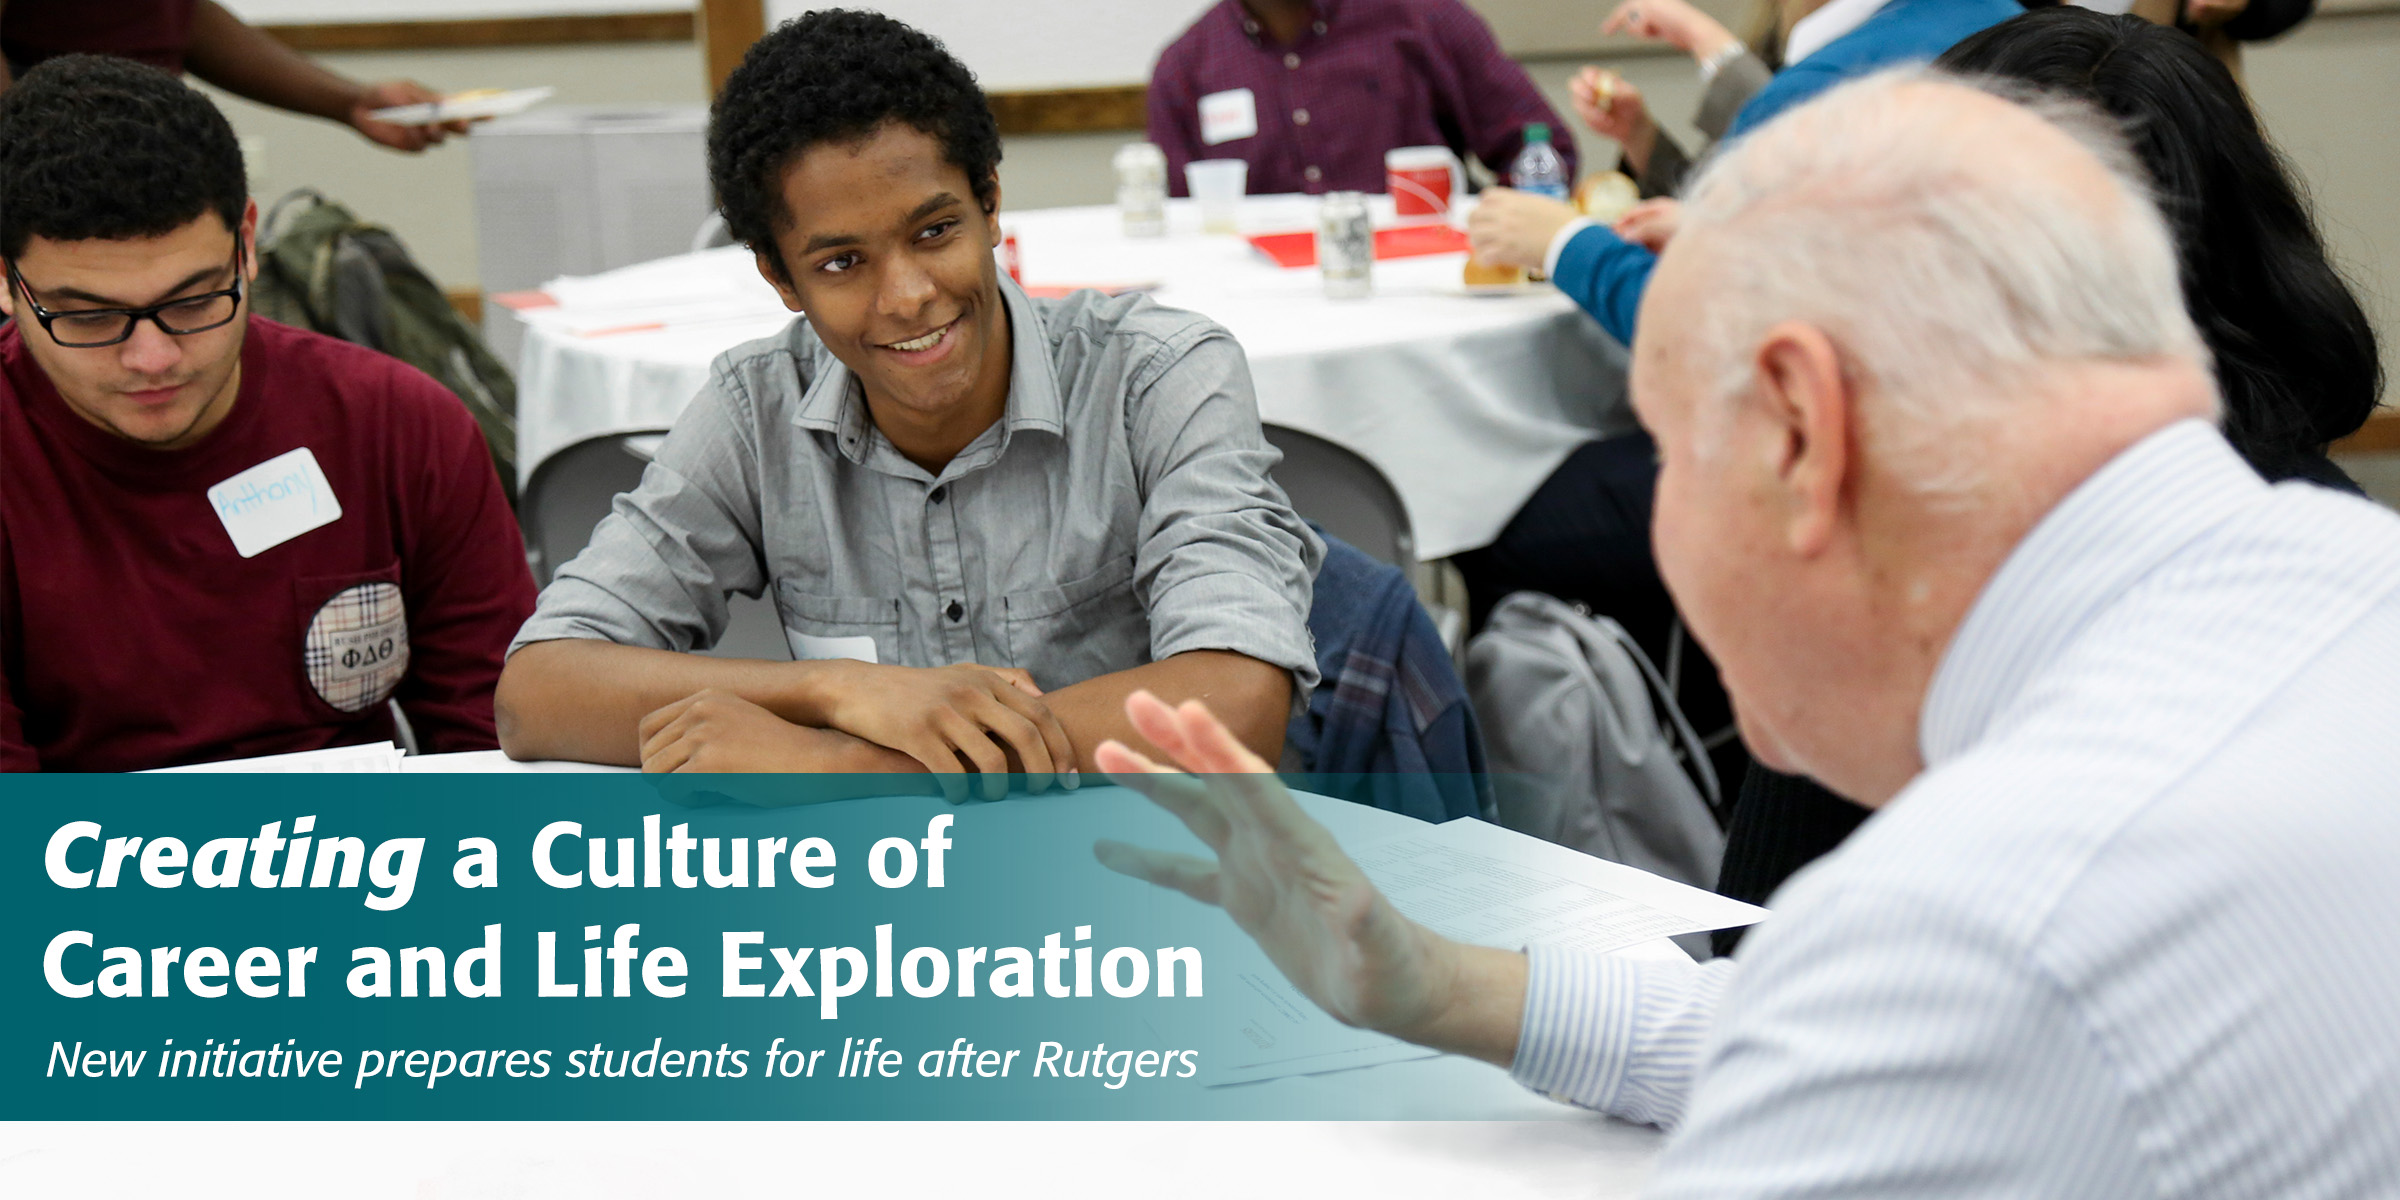 Creating a Culture of Career and Life Exploration, New initiative prepares students for life after Rutgers